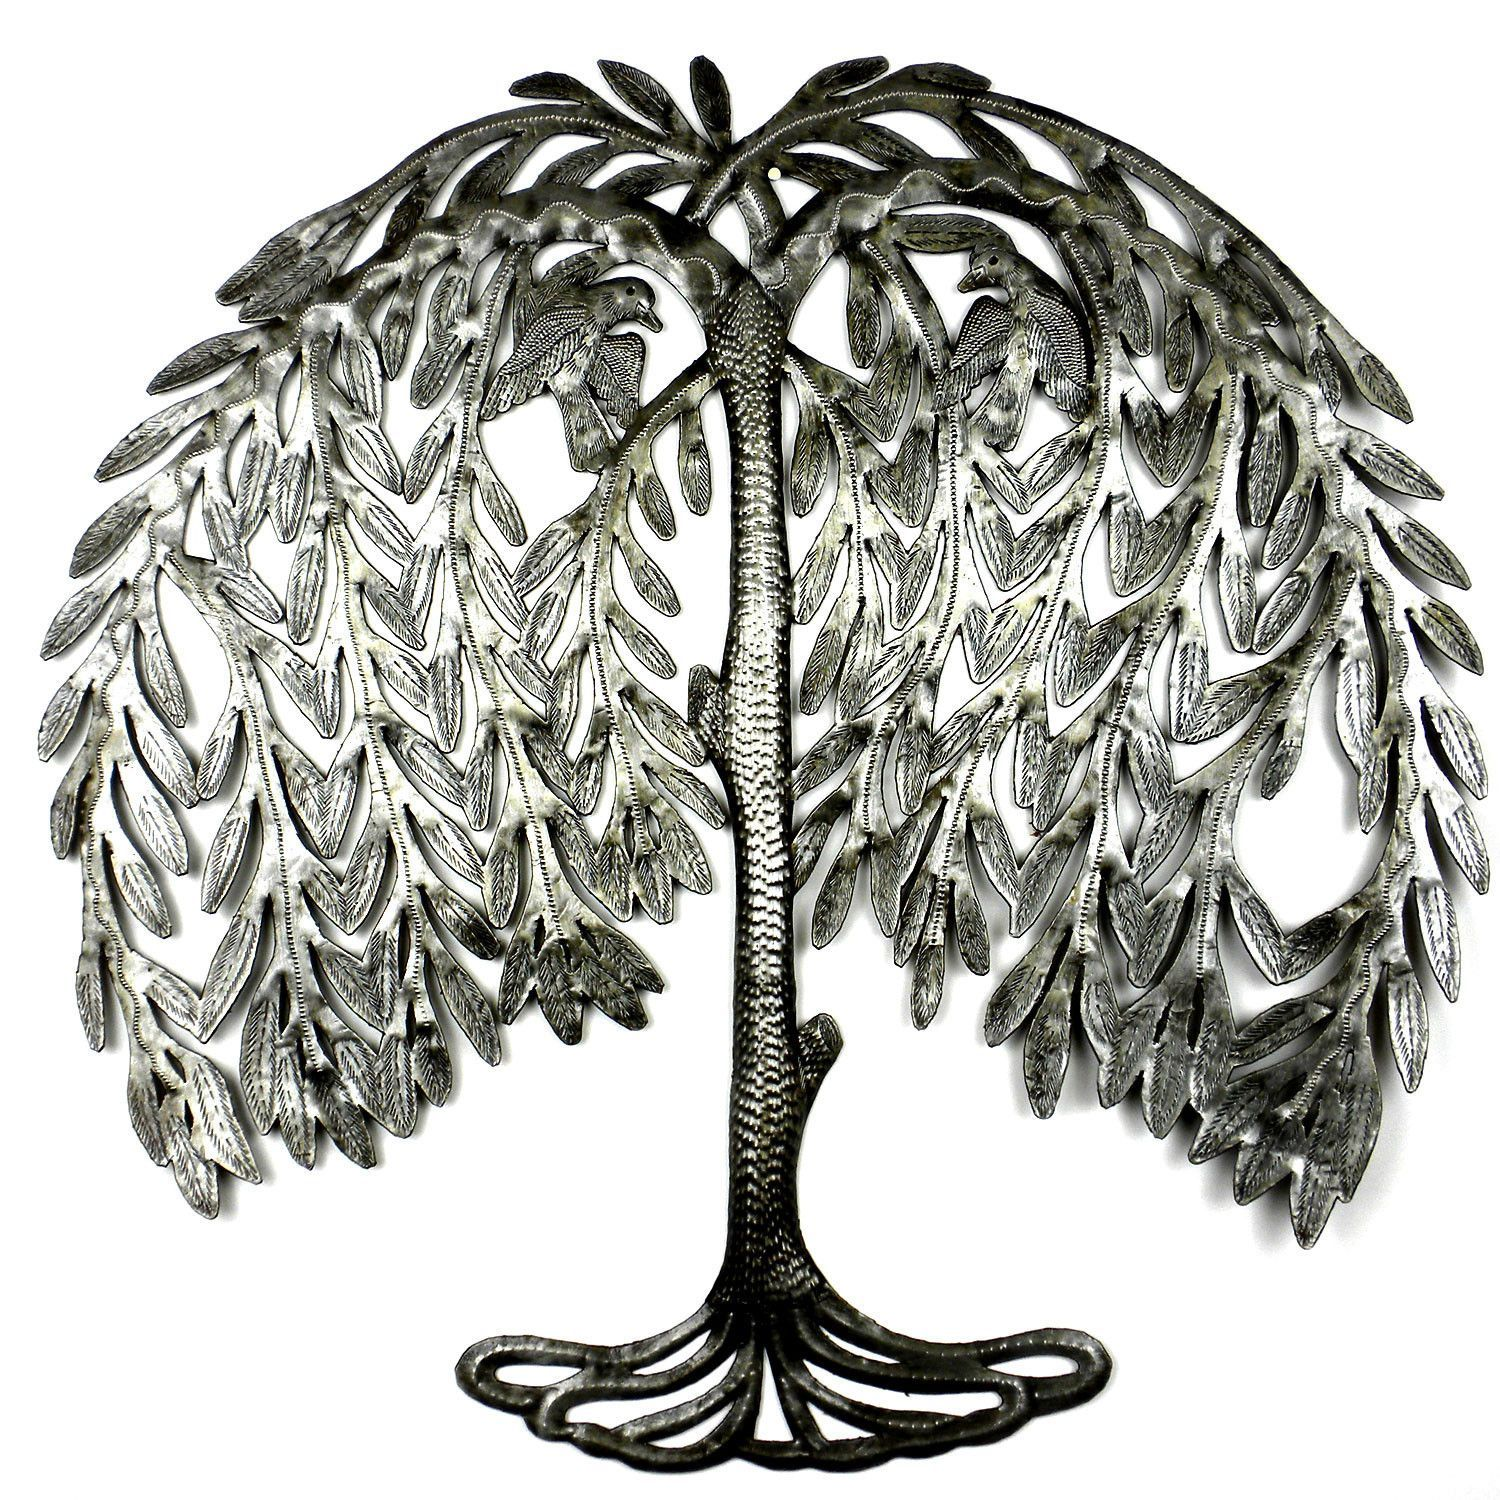 Weeping willow metal art croix des bouquets from latitudes fair